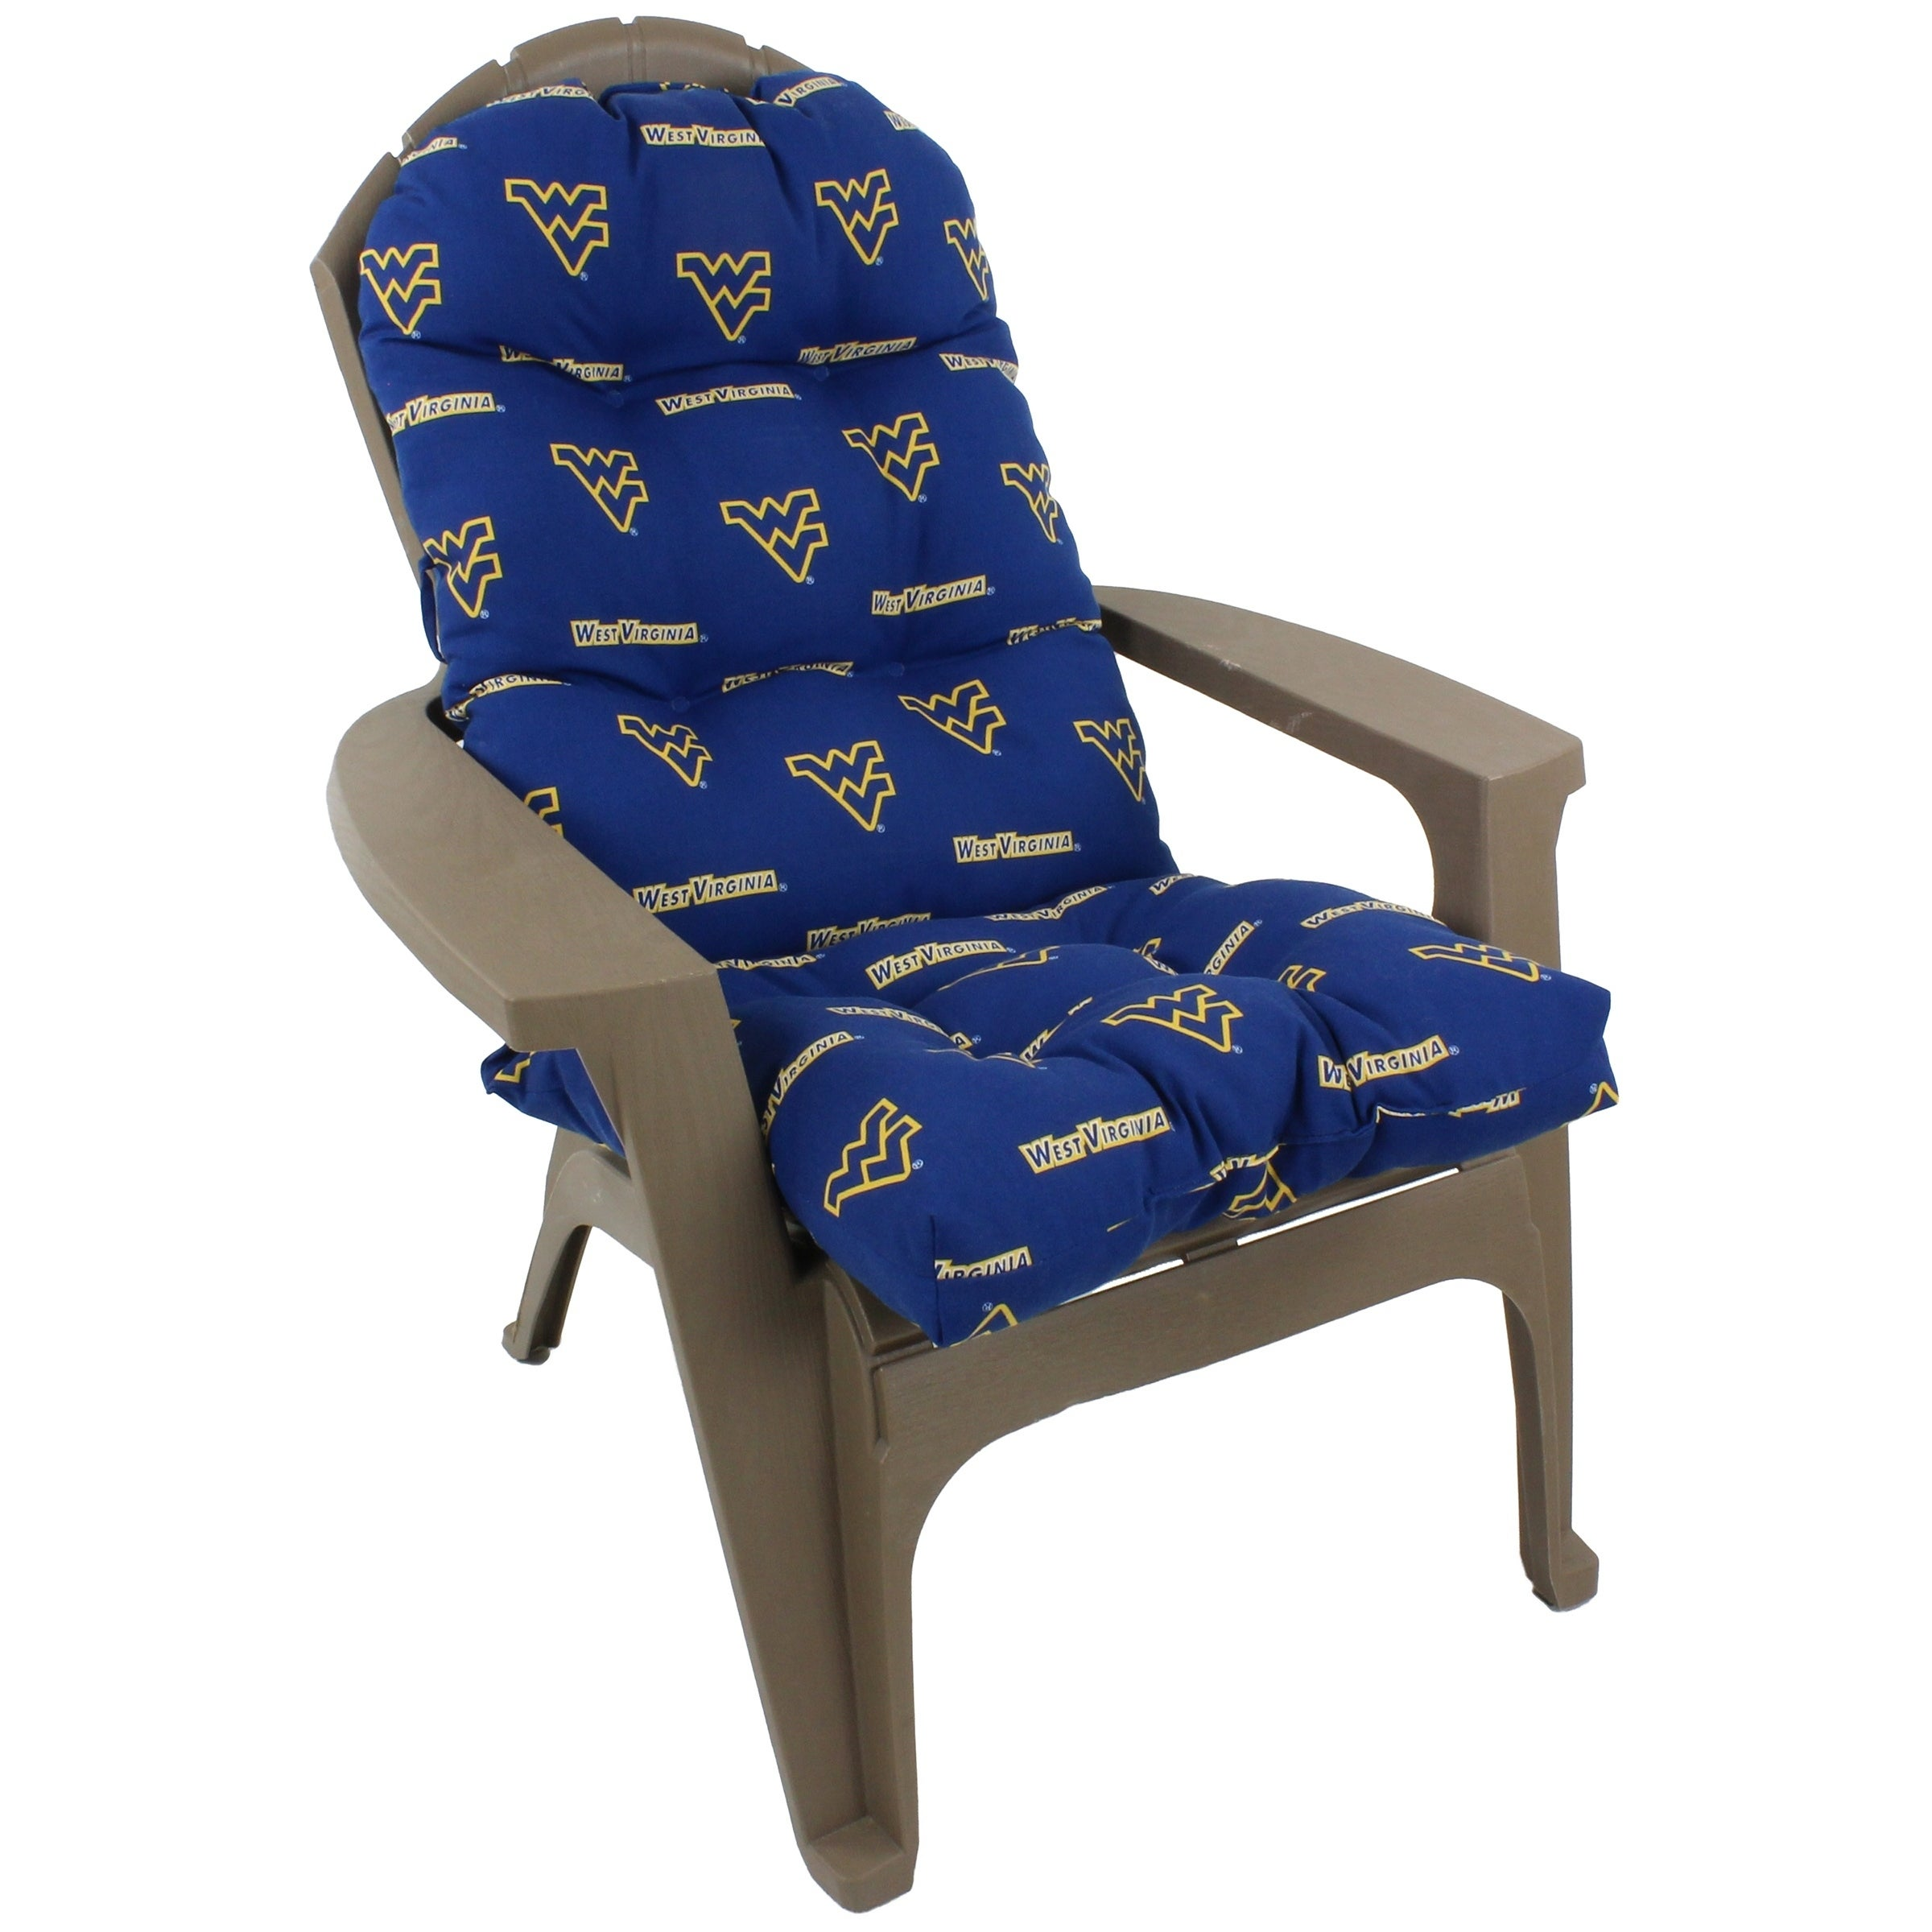 West Virginia Mountaineers Adirondack Chair Cushion Overstock 27587932